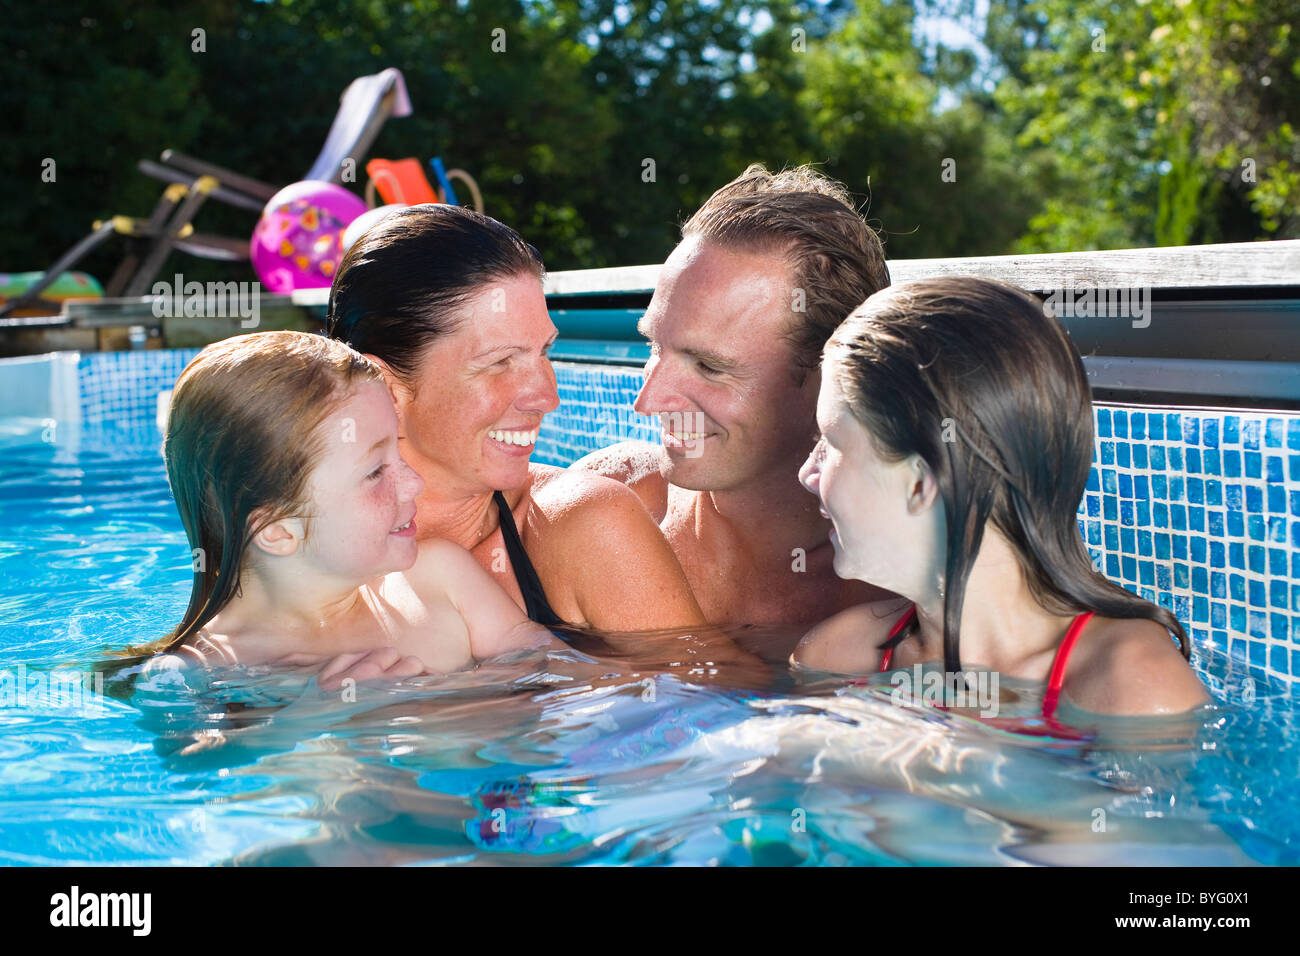 Couple with children in swimming pool - Stock Image